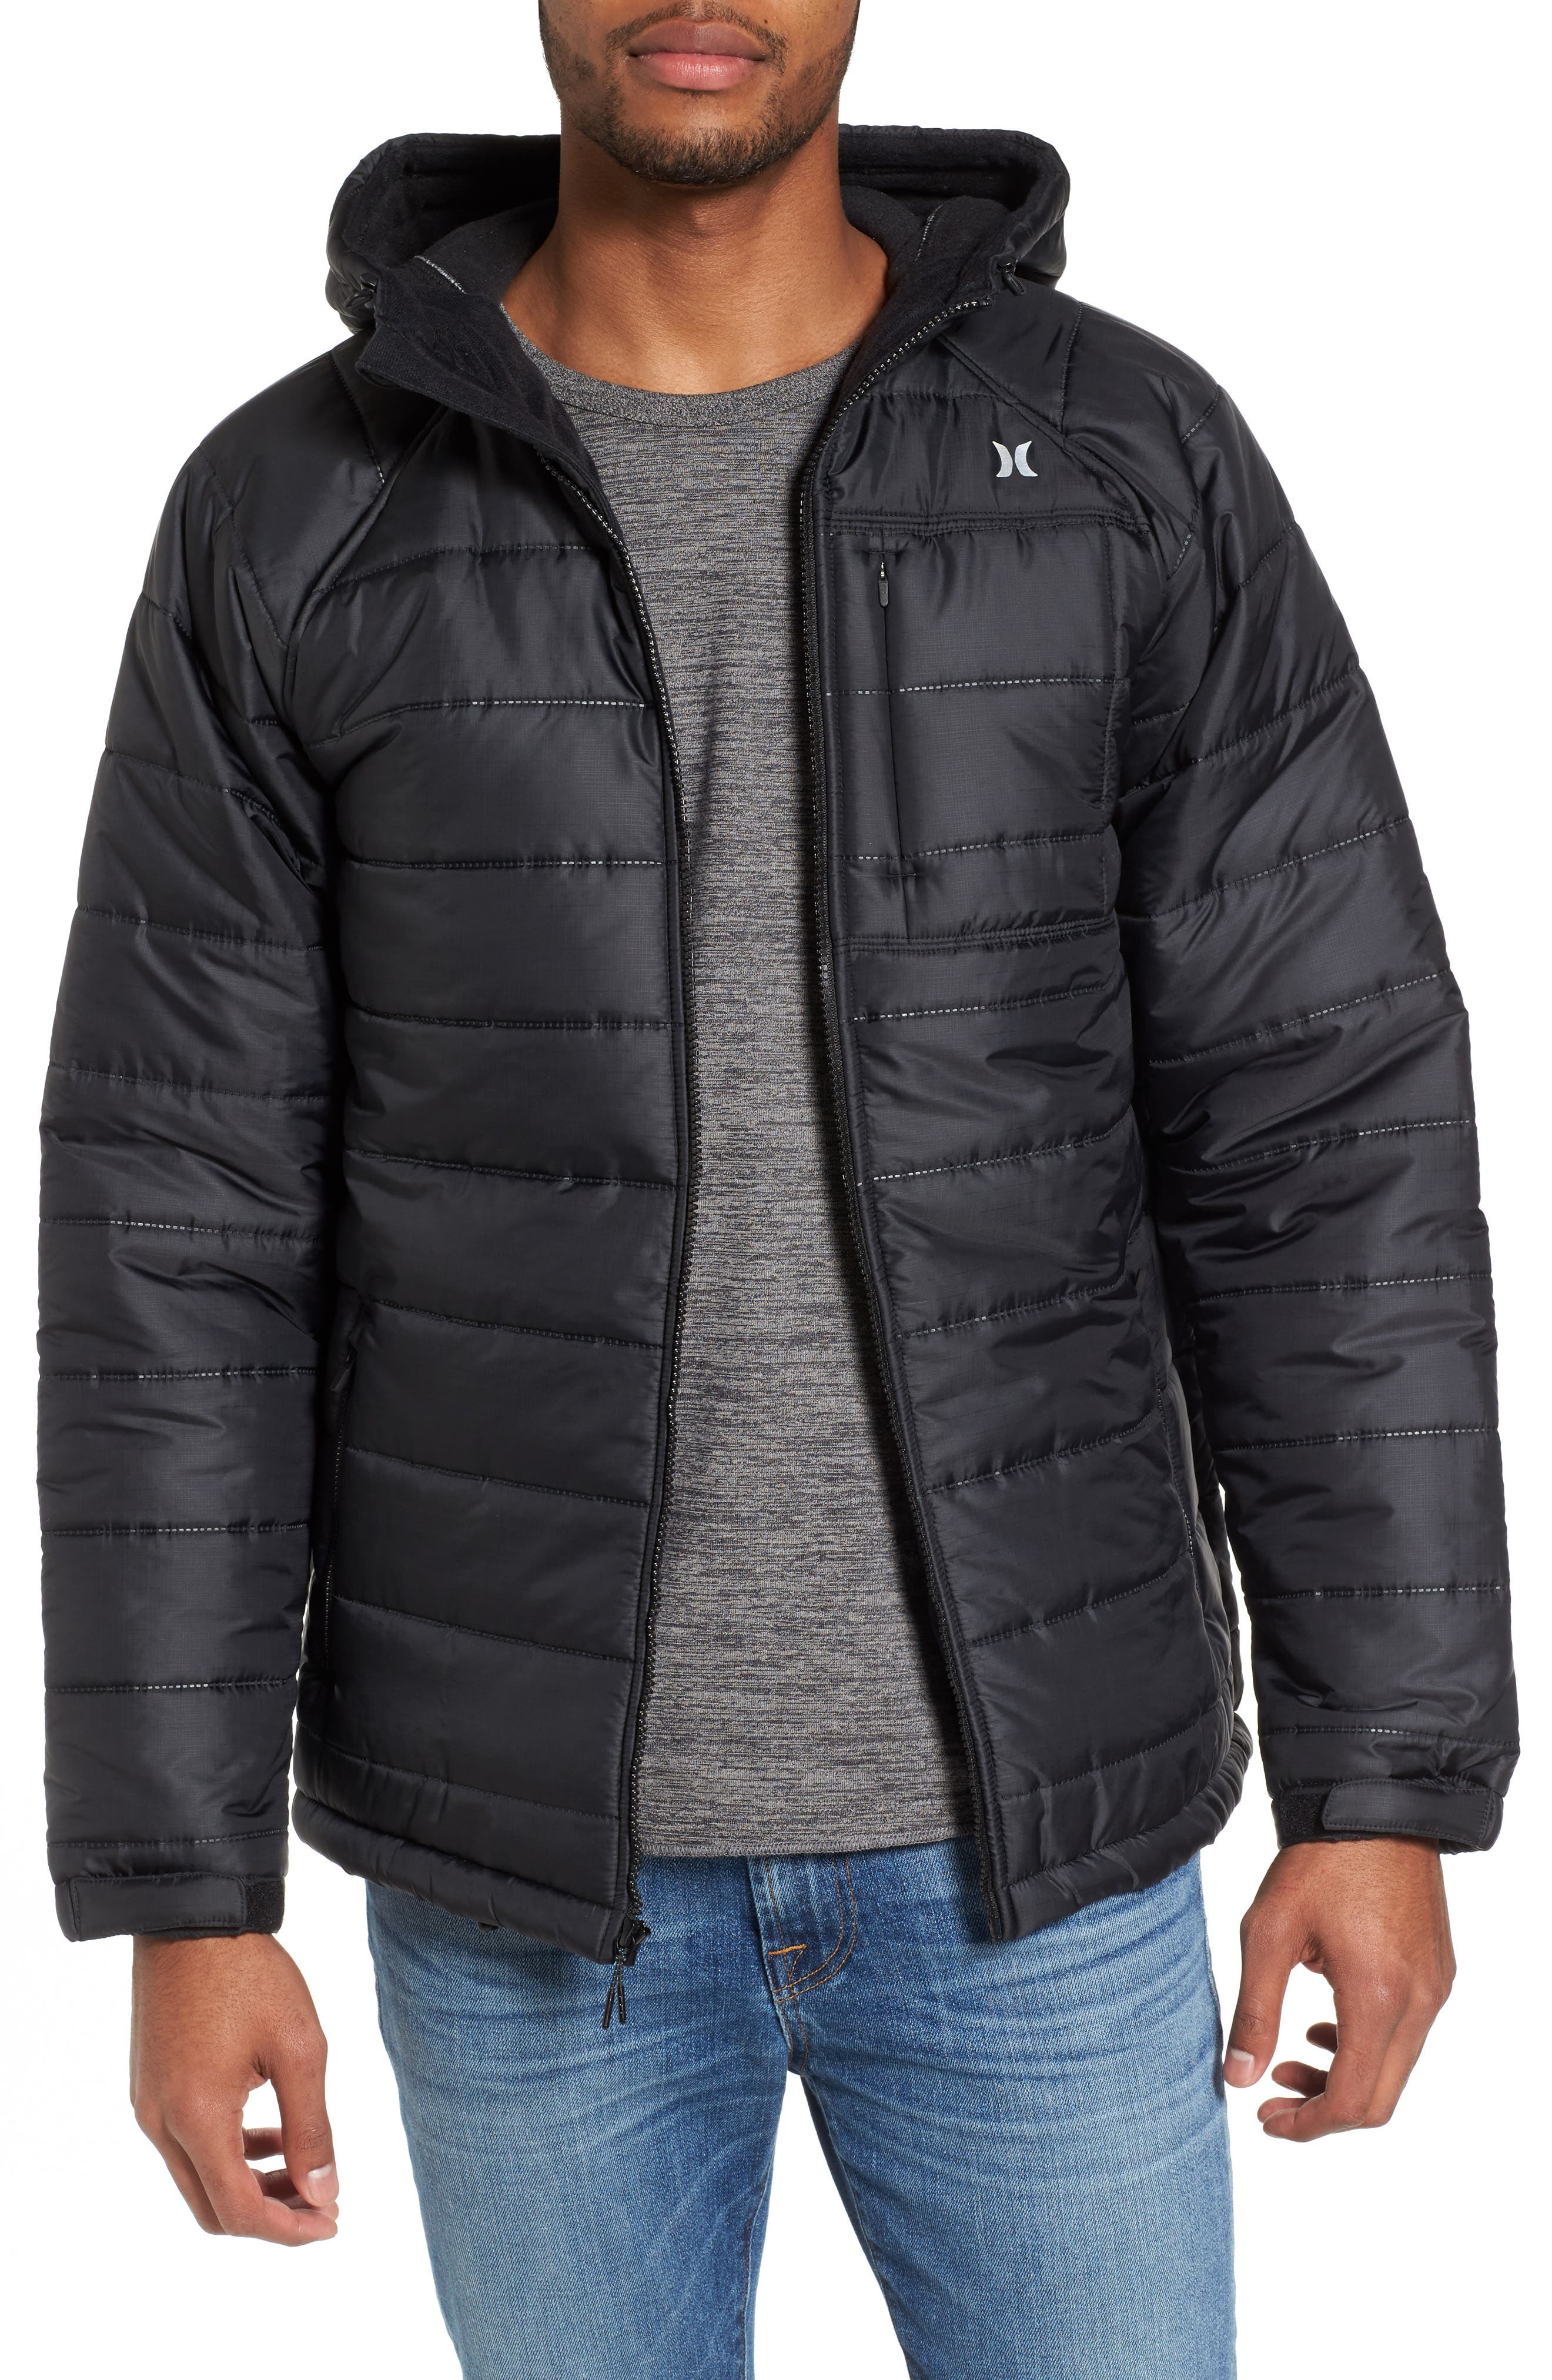 Protect Max Water-Repellent Quilted Jacket,                             Main thumbnail 1, color,                             010